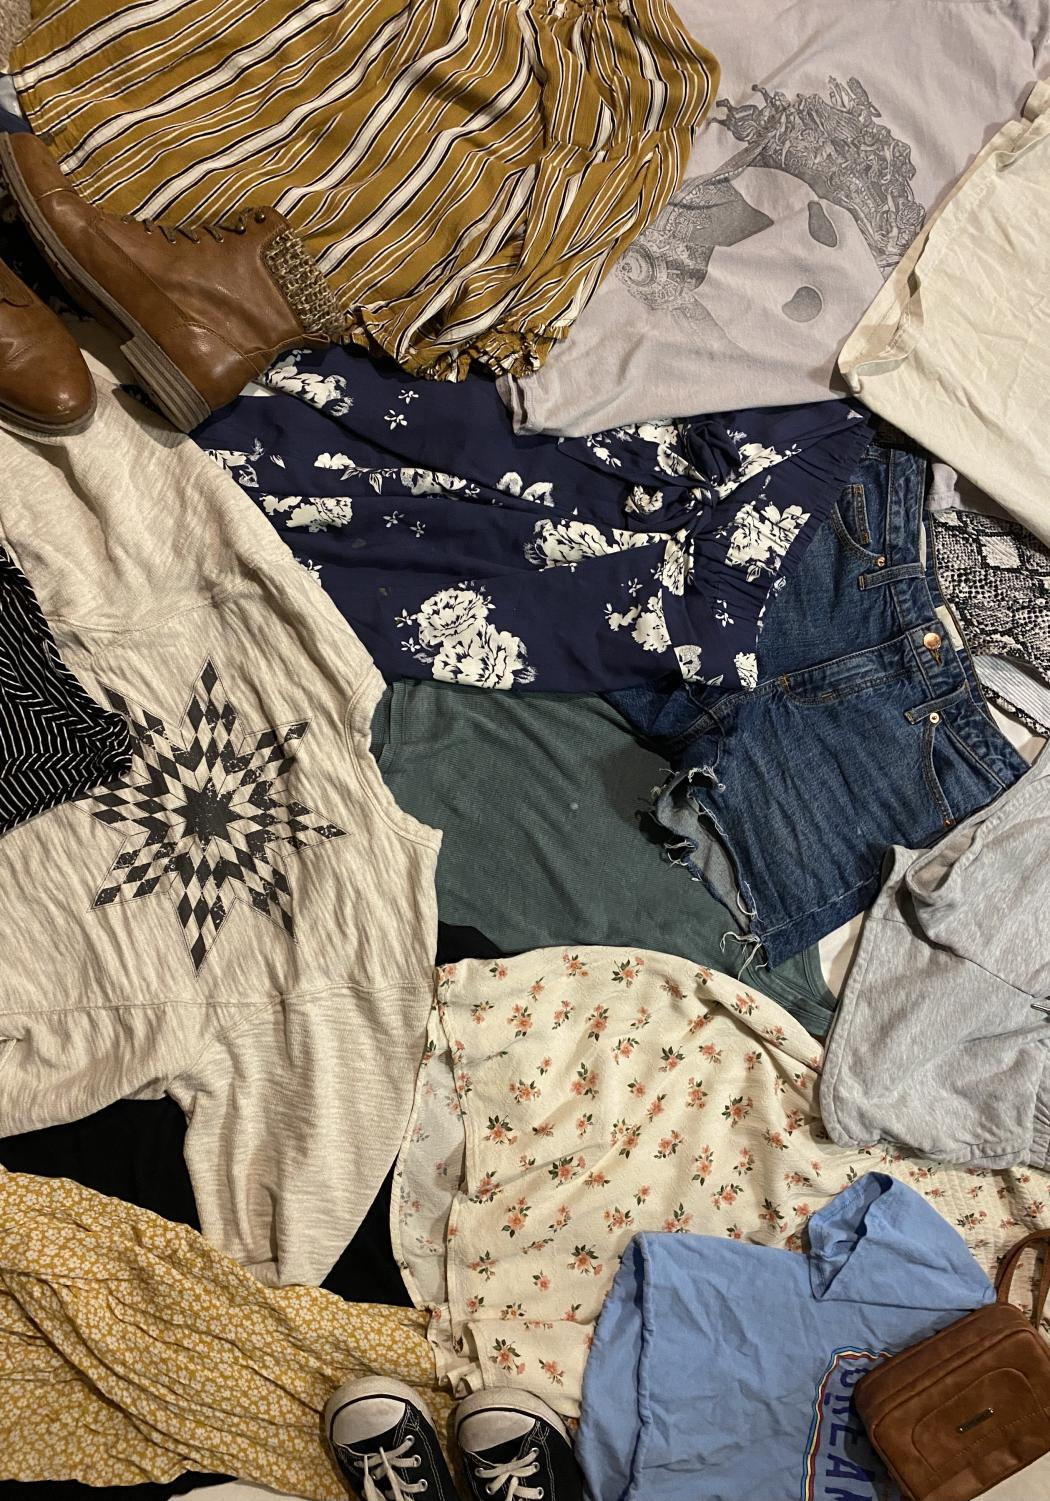 Thrifting: Gentrification or Eco-Friendly Solution?